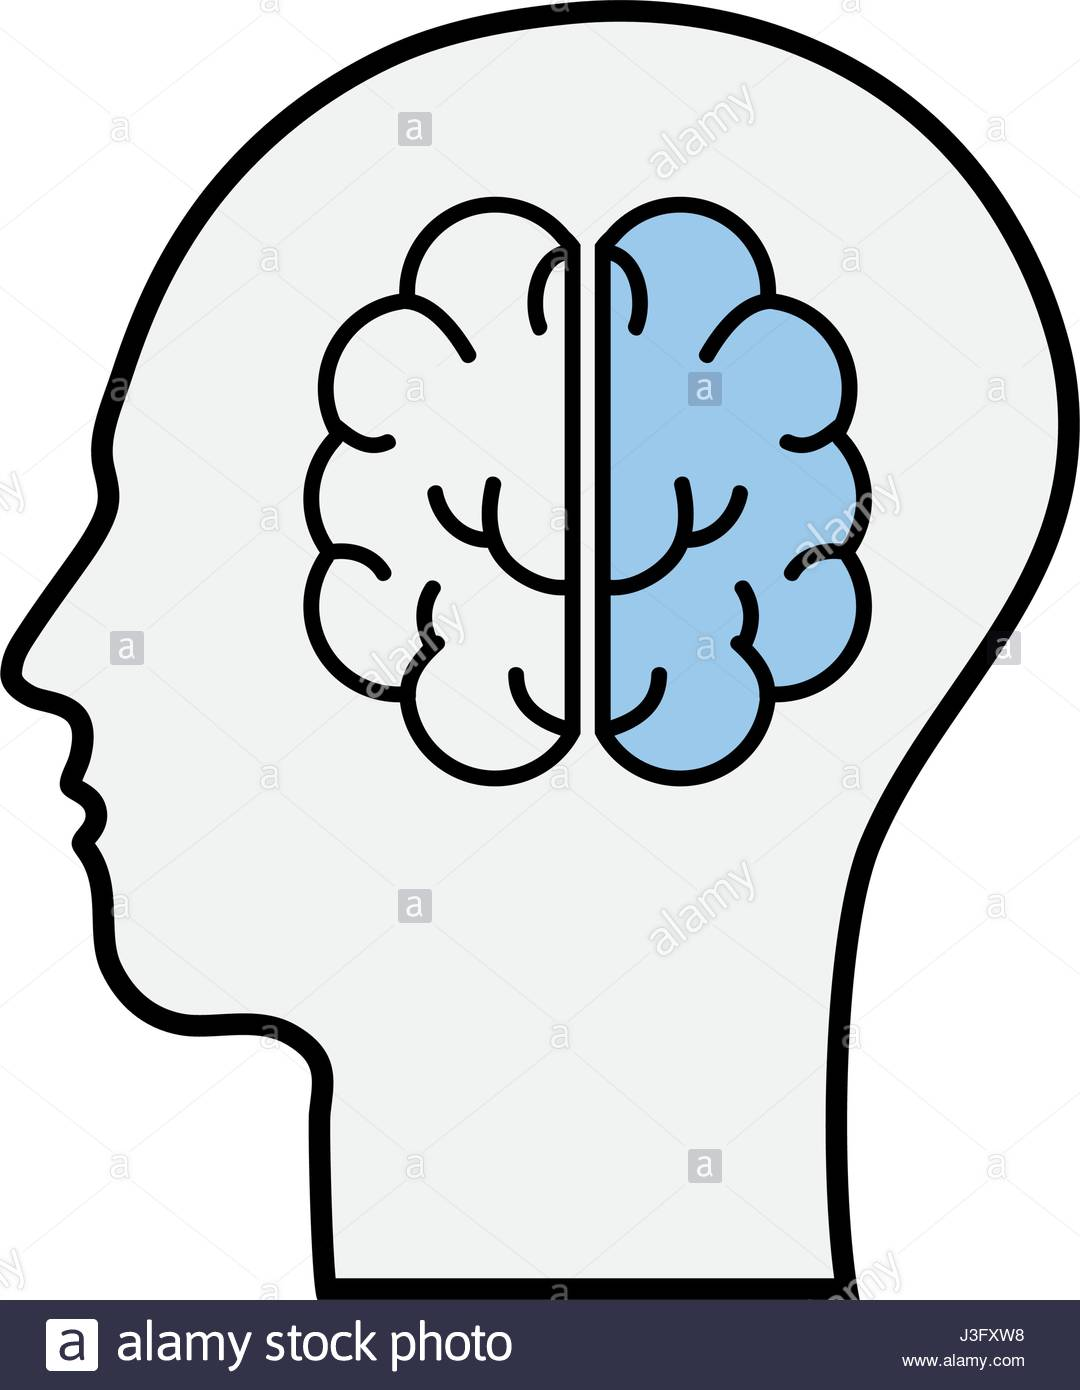 1080x1390 Line Silhouette Head With Brain Inside Stock Vector Art